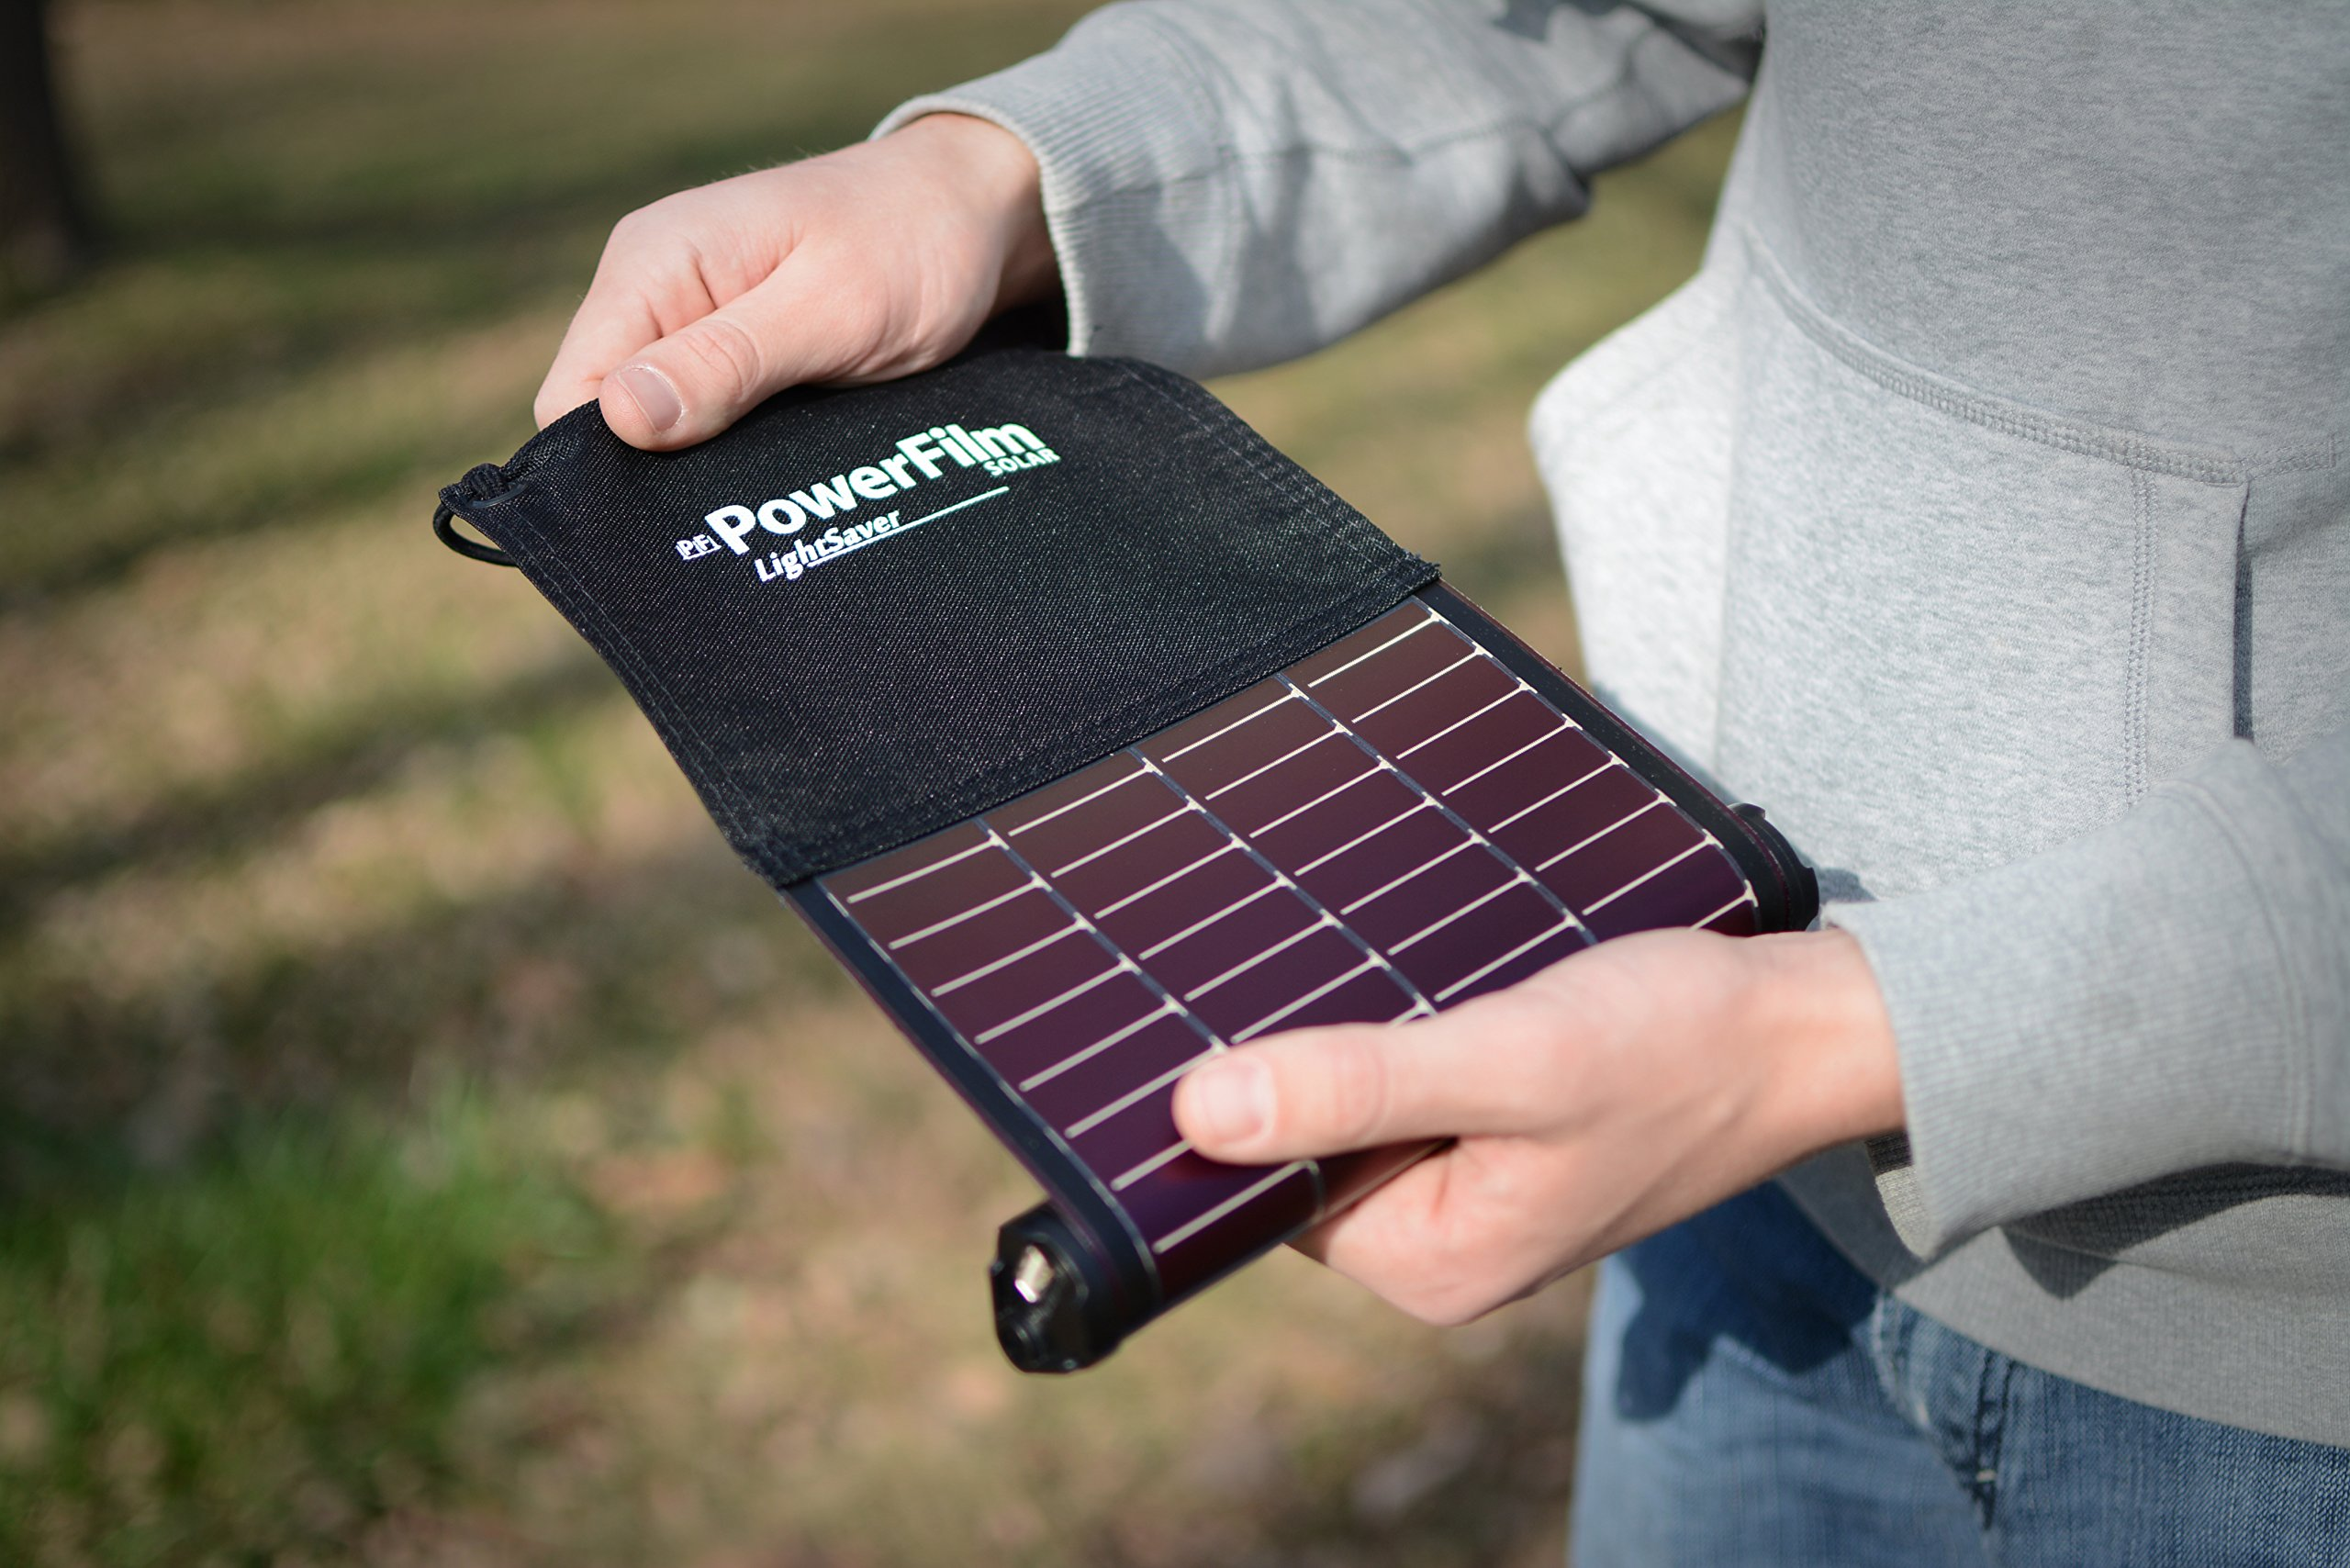 LightSaver USB Roll-up Solar Charger - Battery Bank by PF POWERFILM